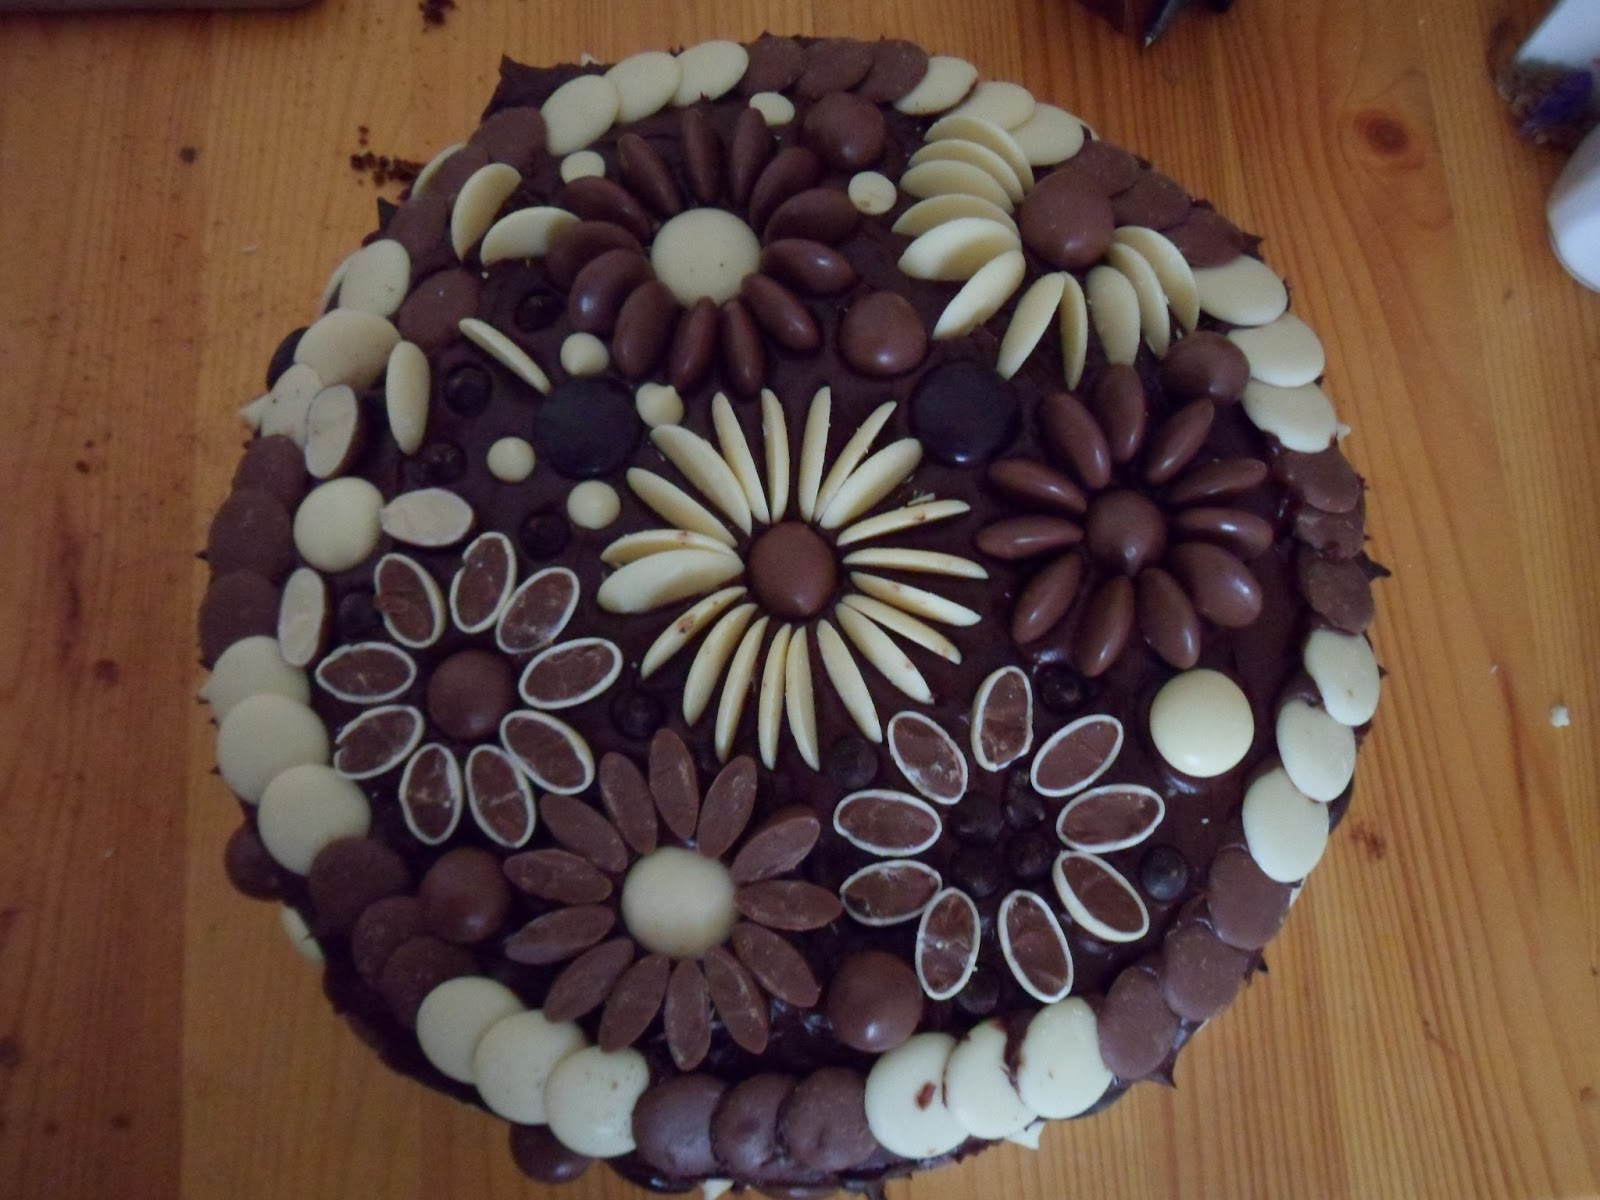 Cake Designs With Chocolate Buttons : Cakes & Bakes